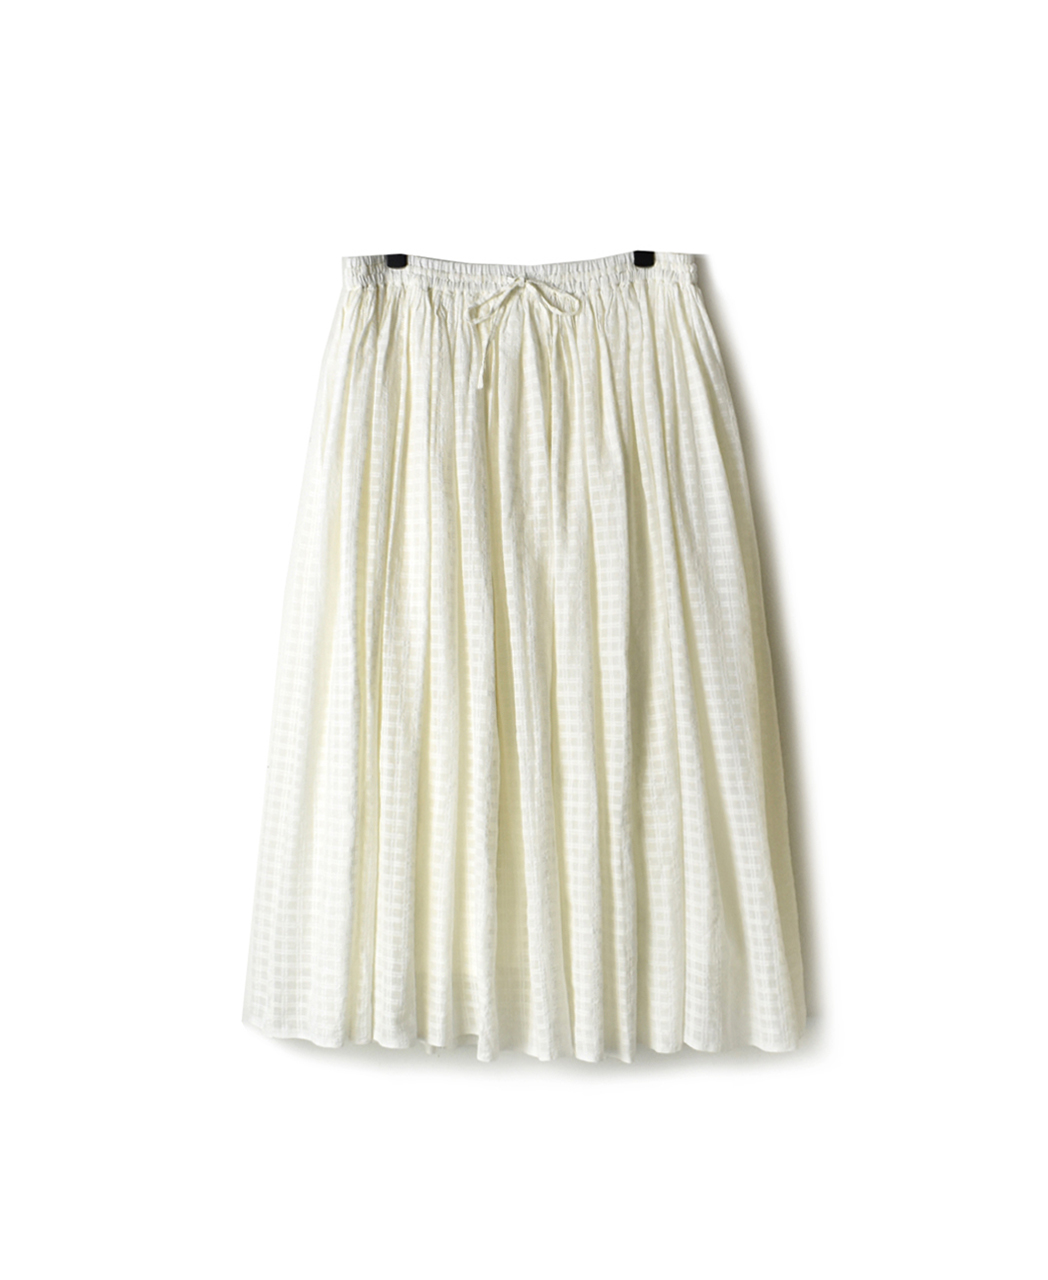 INMDS19704 HAND WOVEN SELF CHECK GATHERED SKIRT